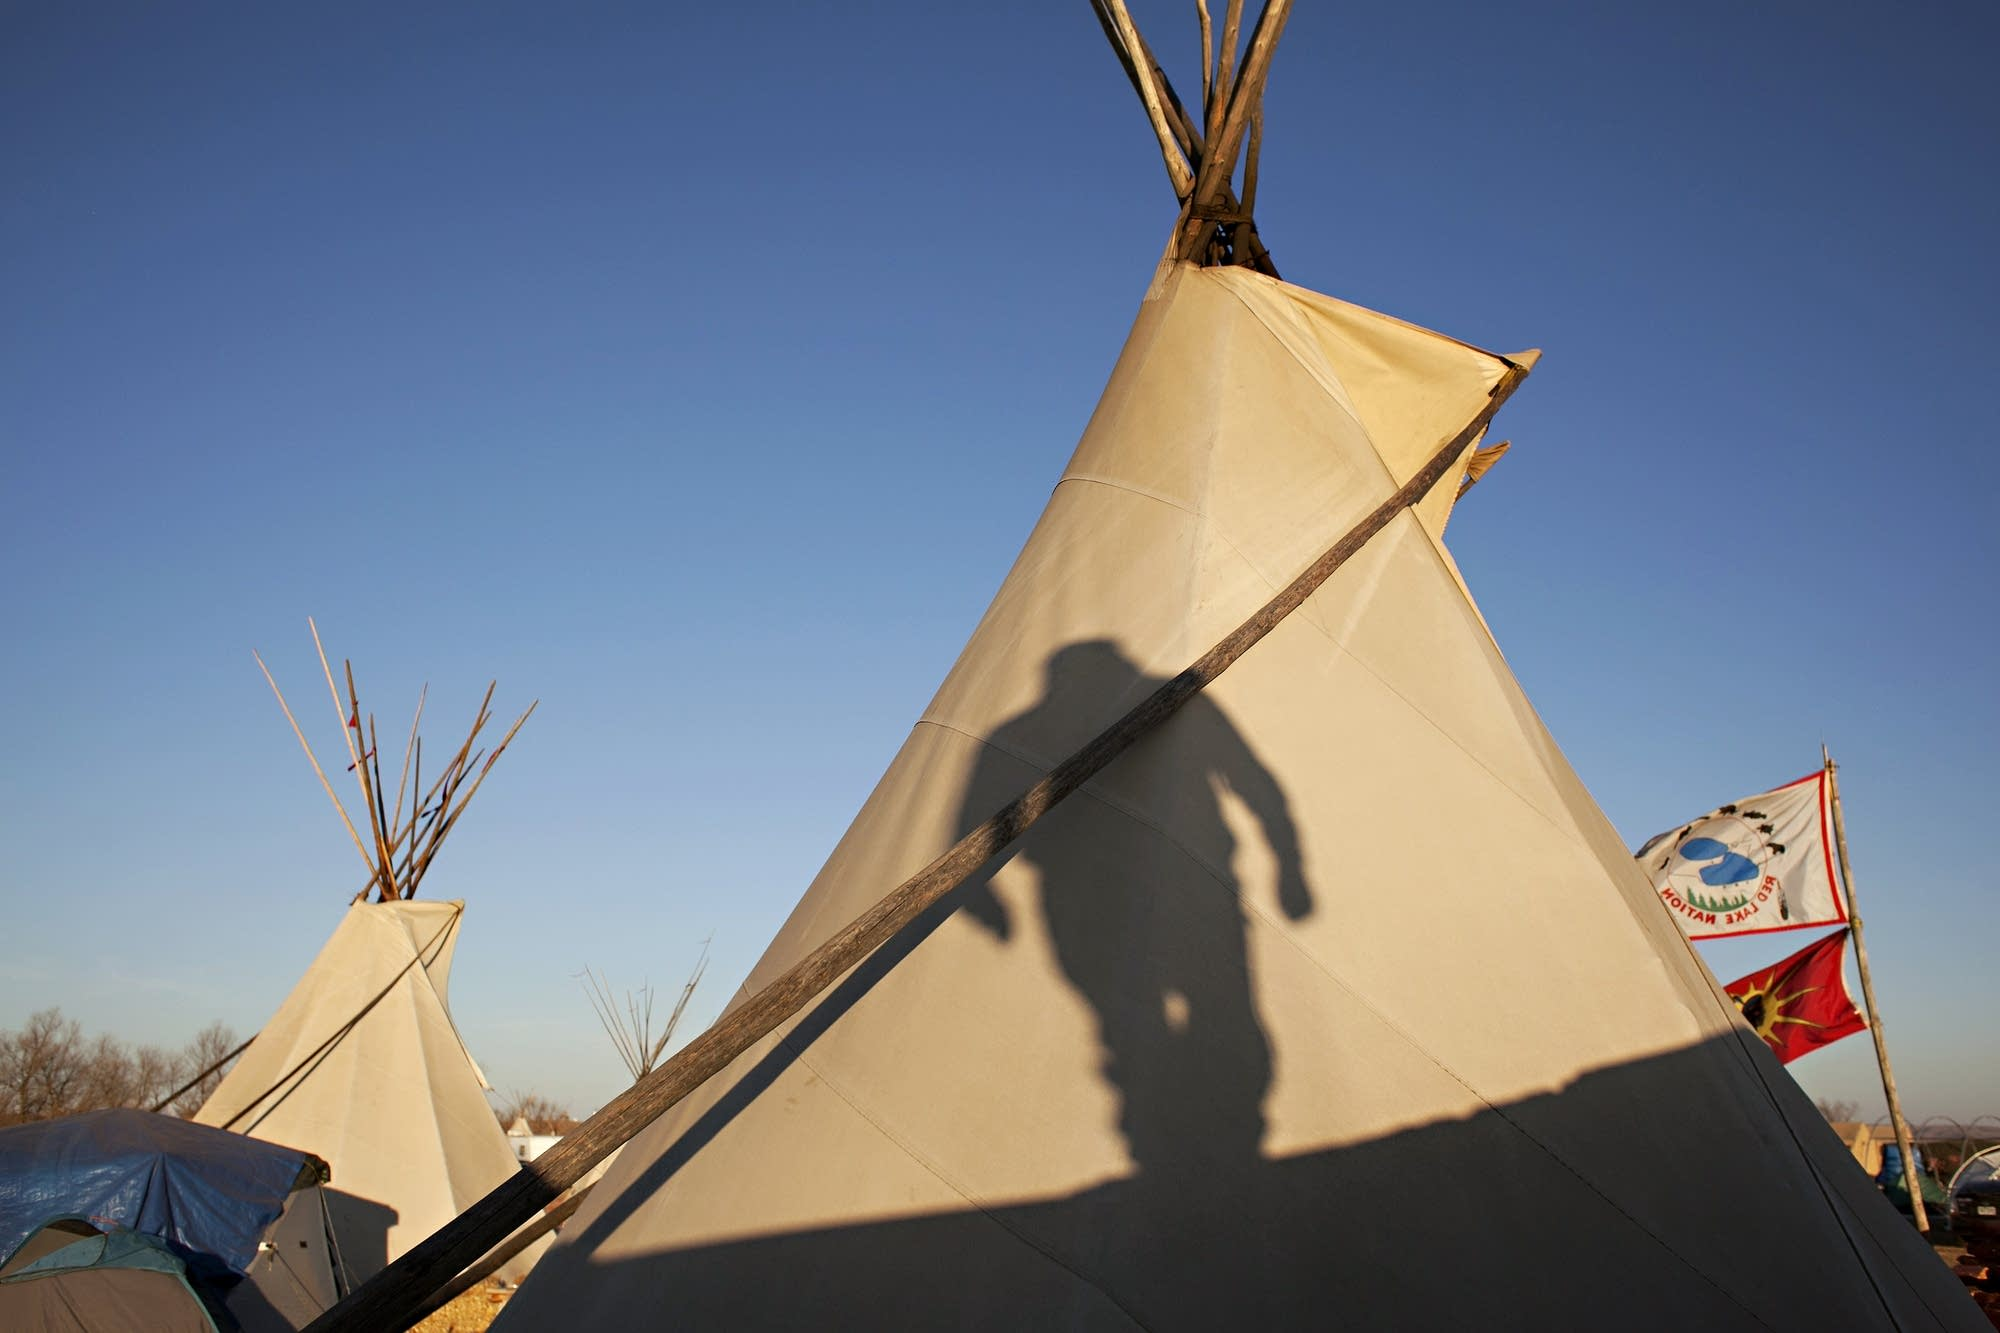 Frank Sander's shadow graces a tipi